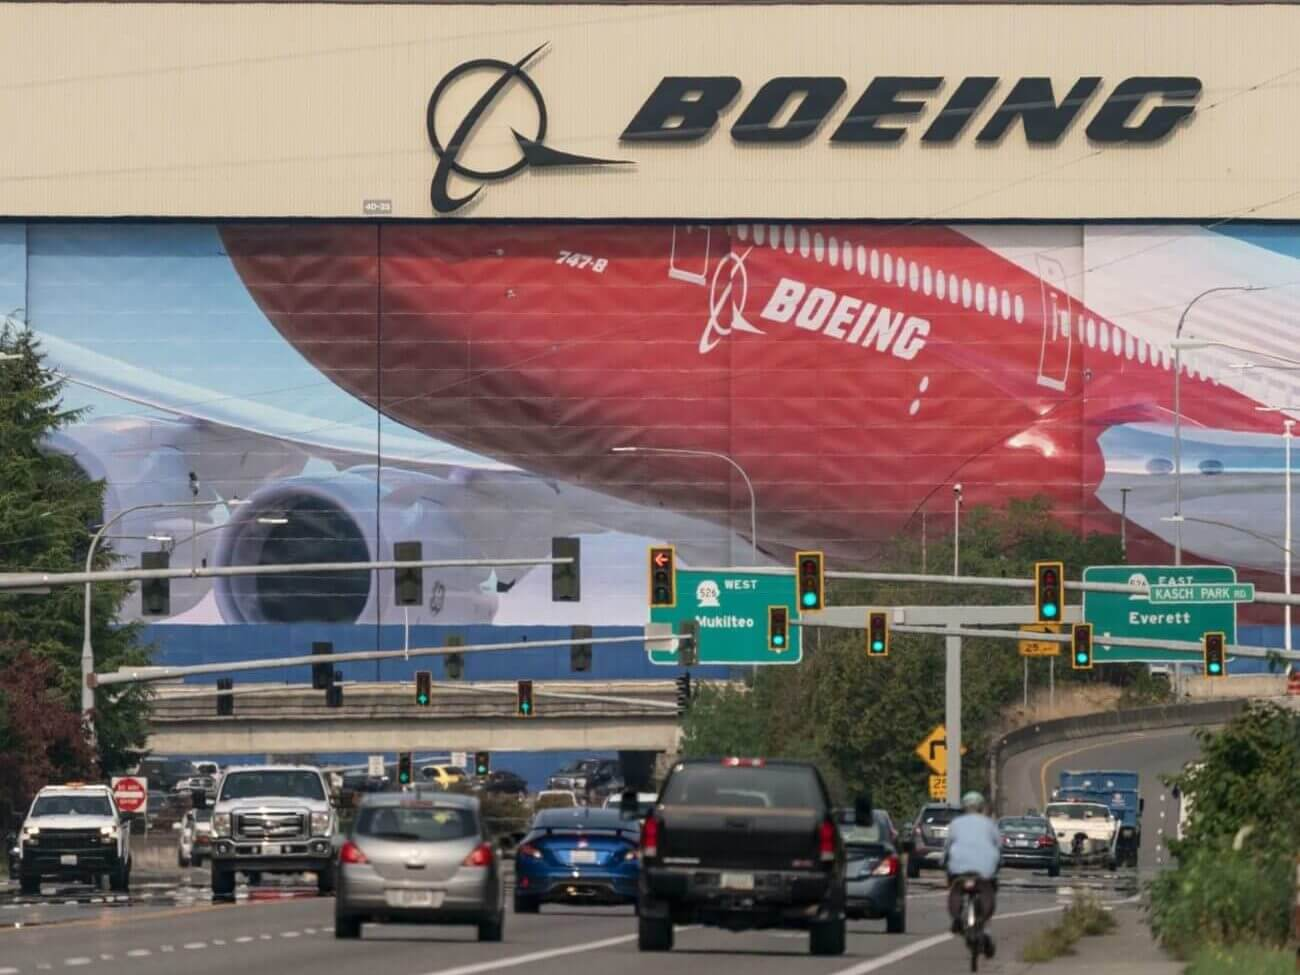 Boeing Is the Newest Company to Net away a Adverse Industry Ambiance